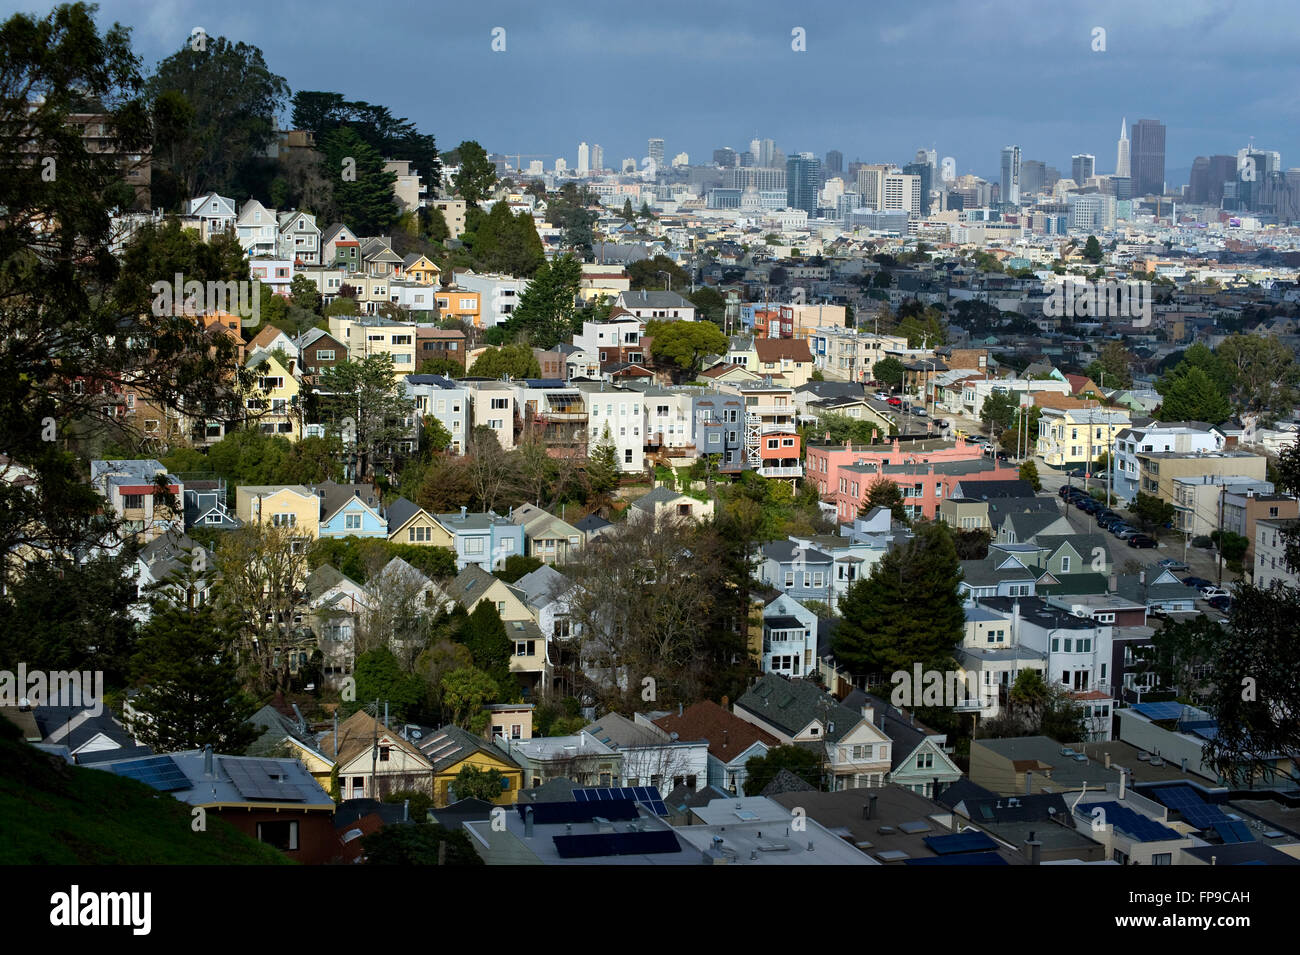 San Francisco city skyline and homes - Stock Image